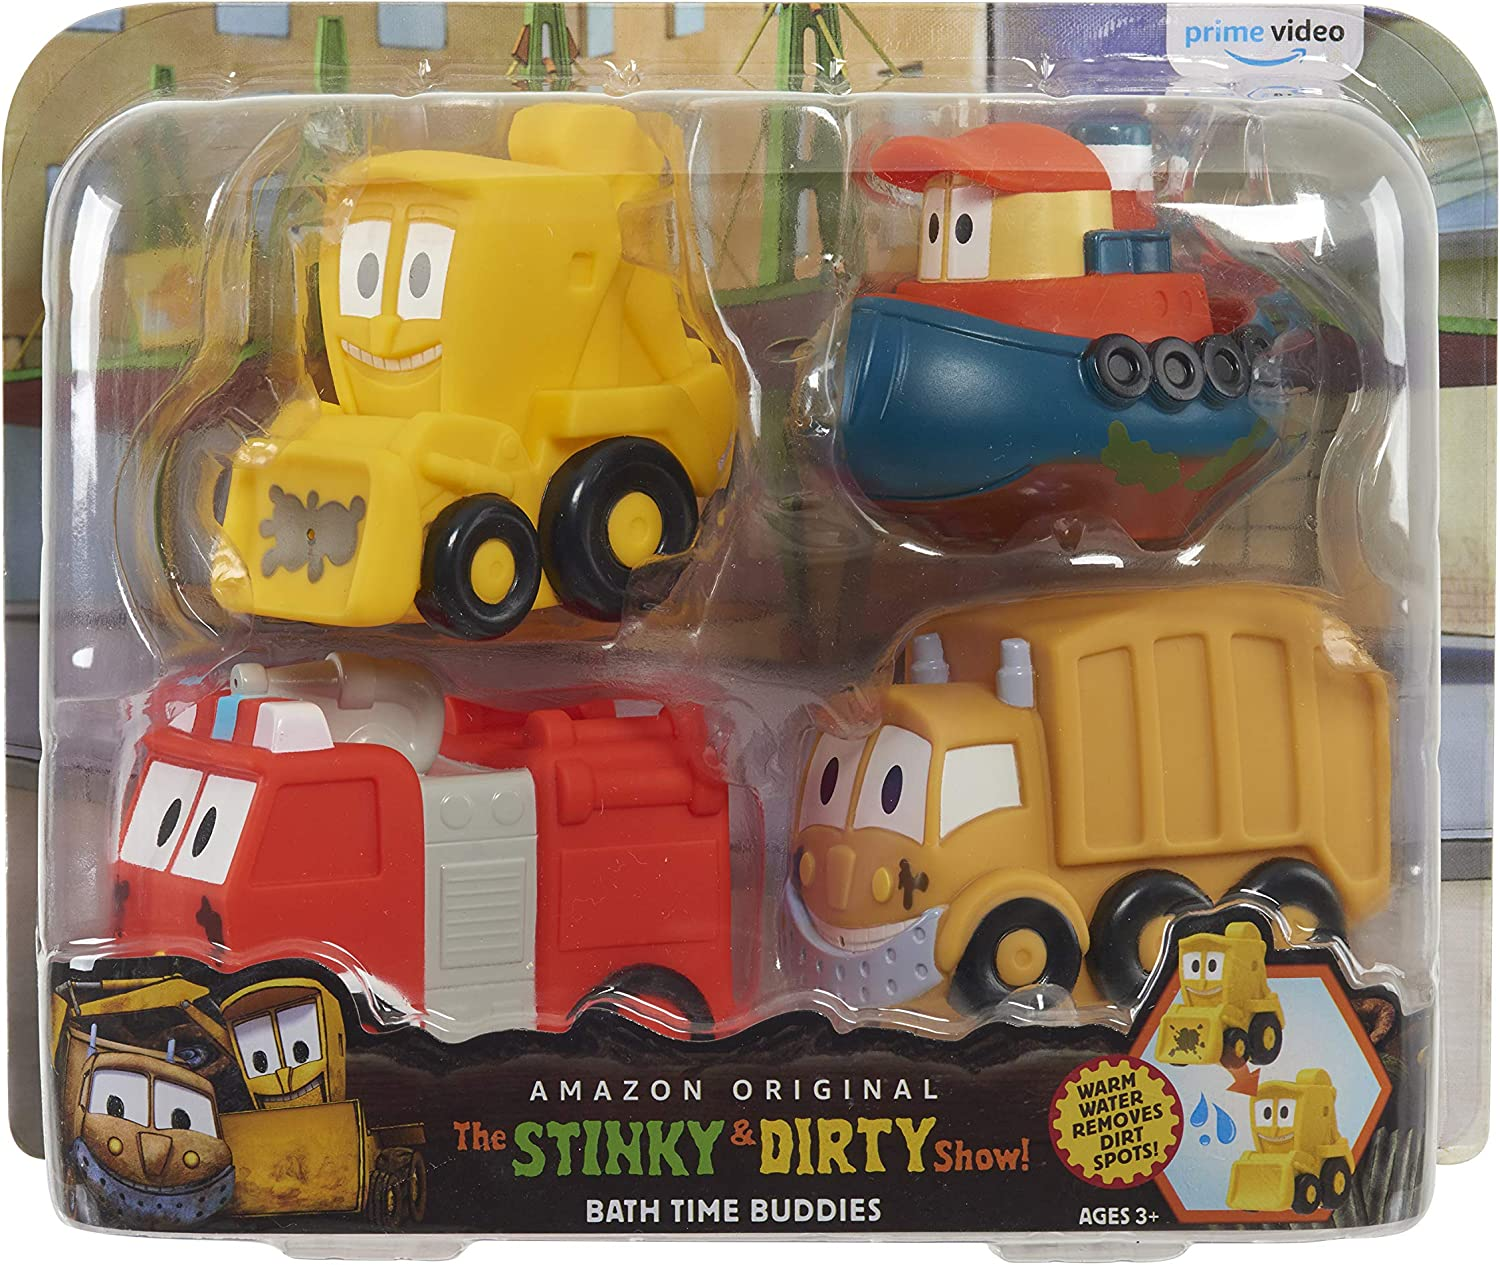 The Stinky & Dirty Show Bath Time Buddies 4 Piece Set - Amazon Exclusive